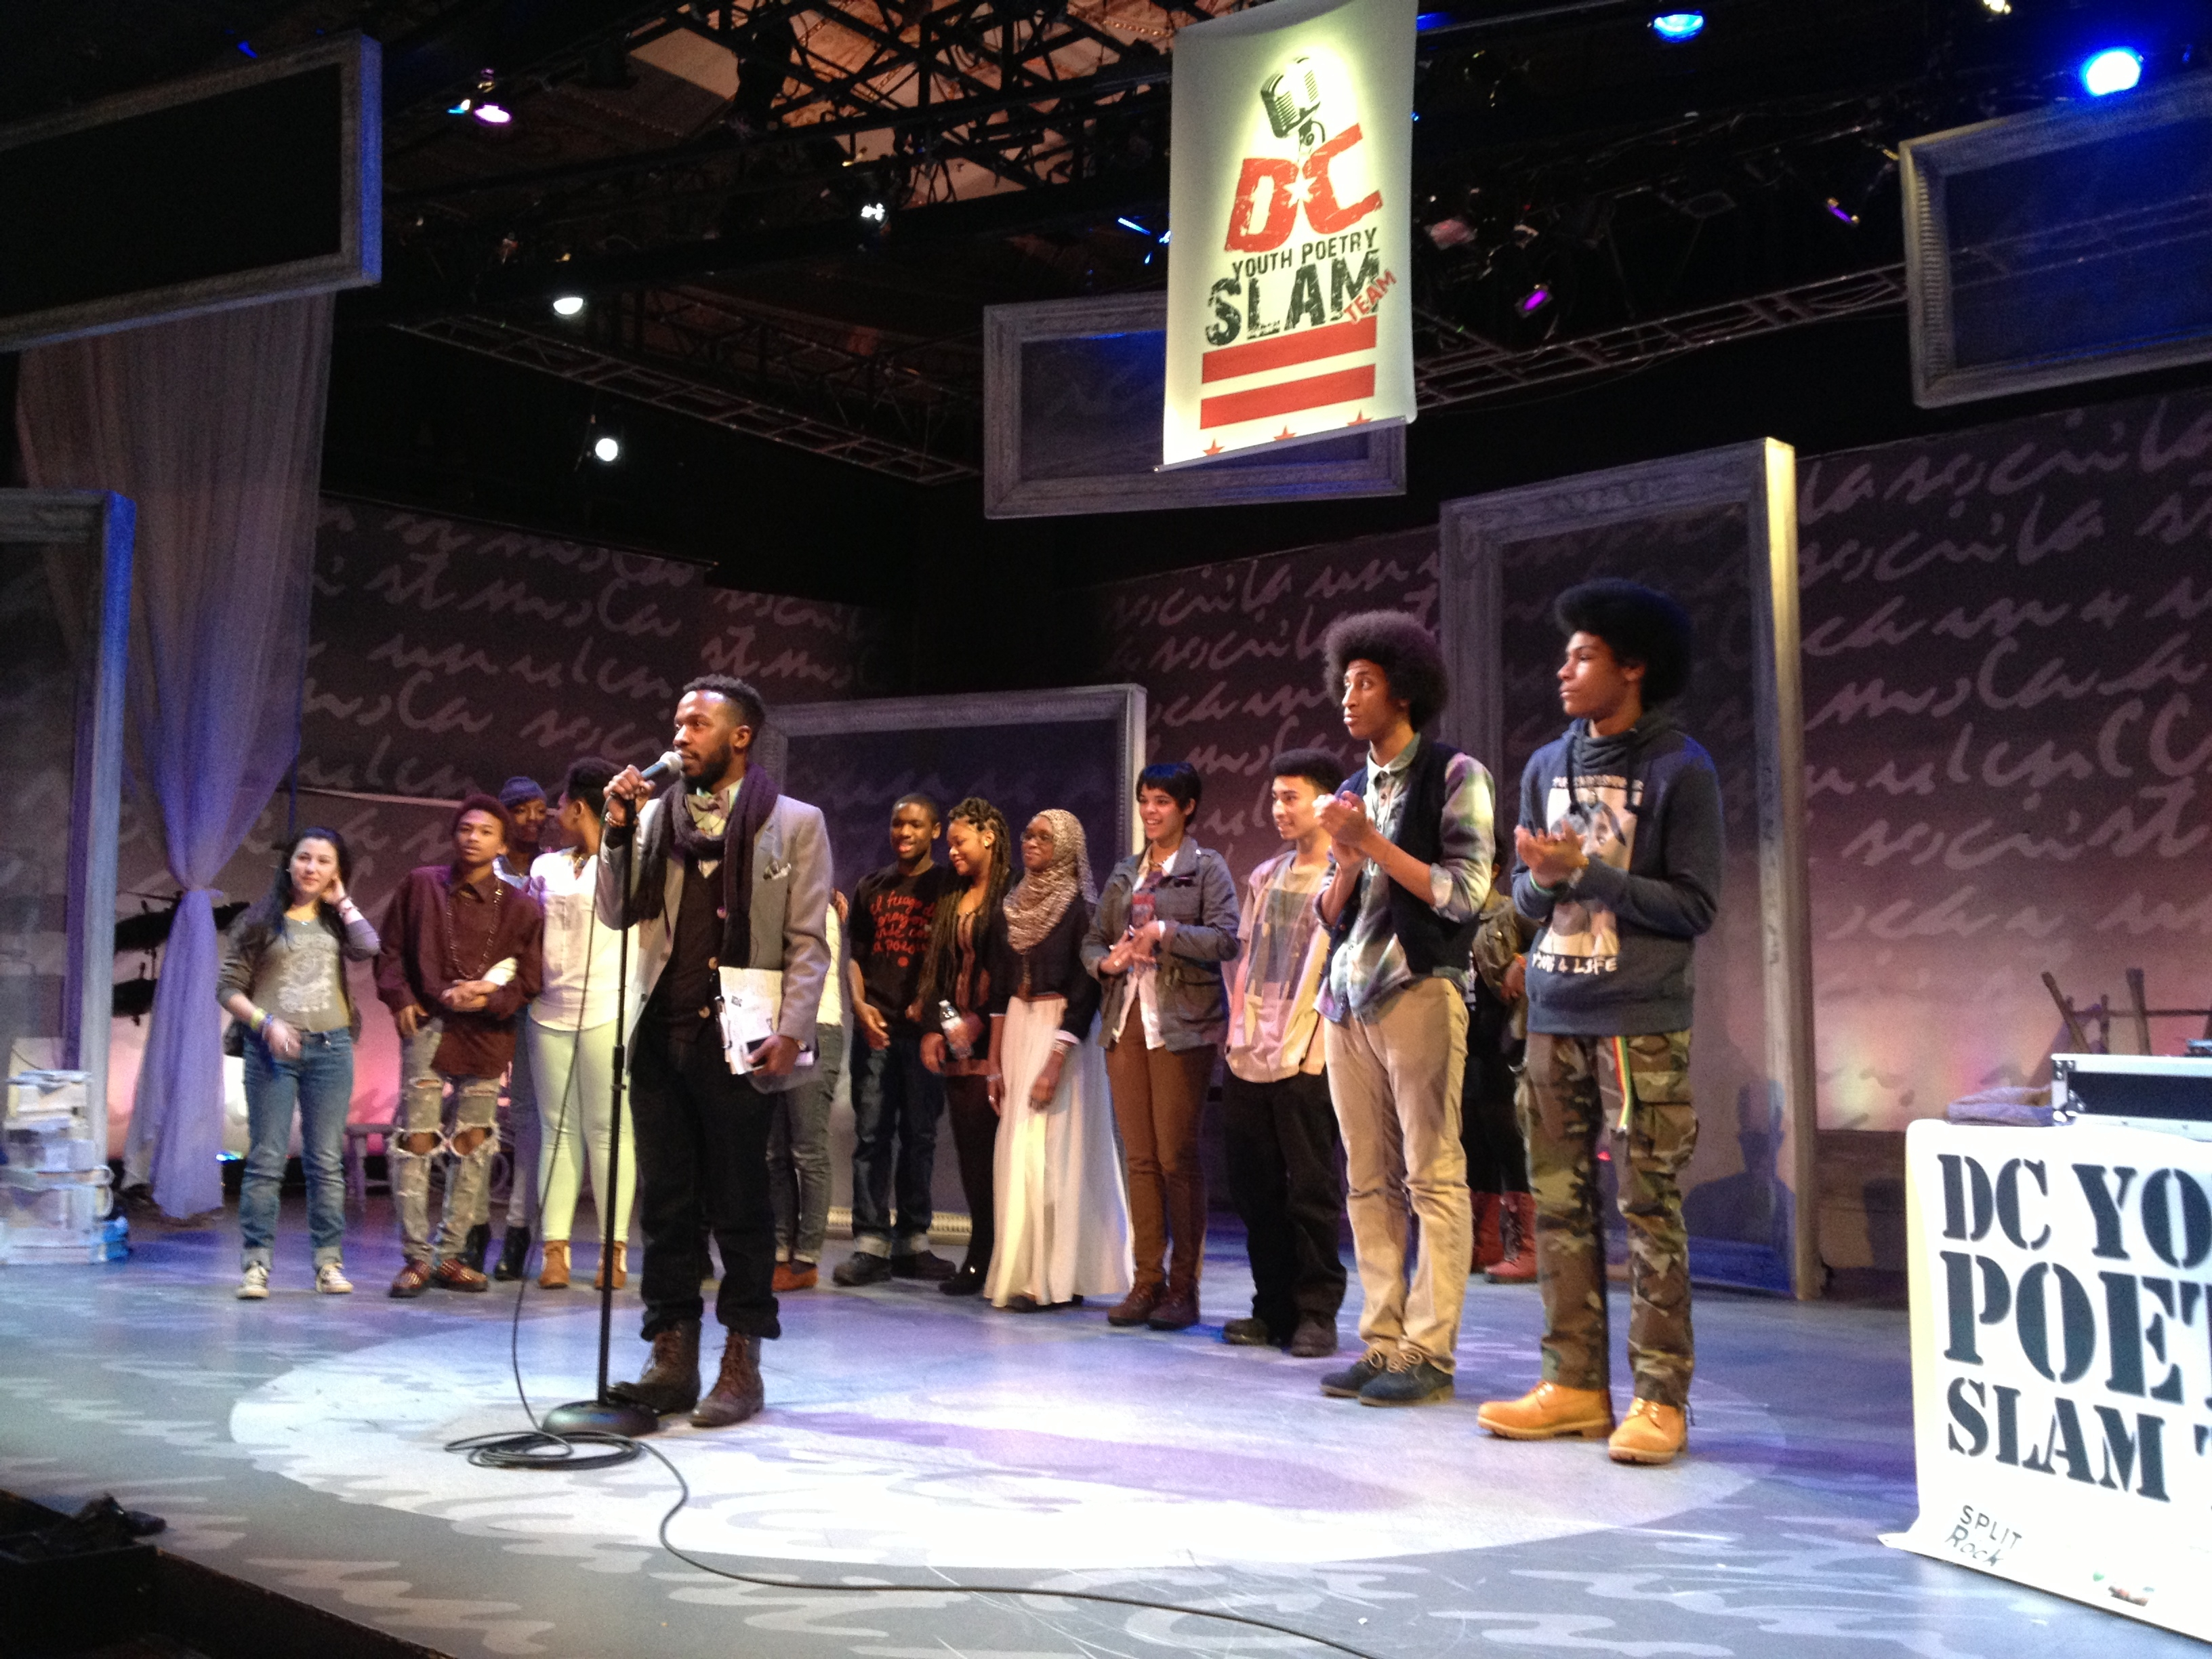 Local teens compete for slam honors